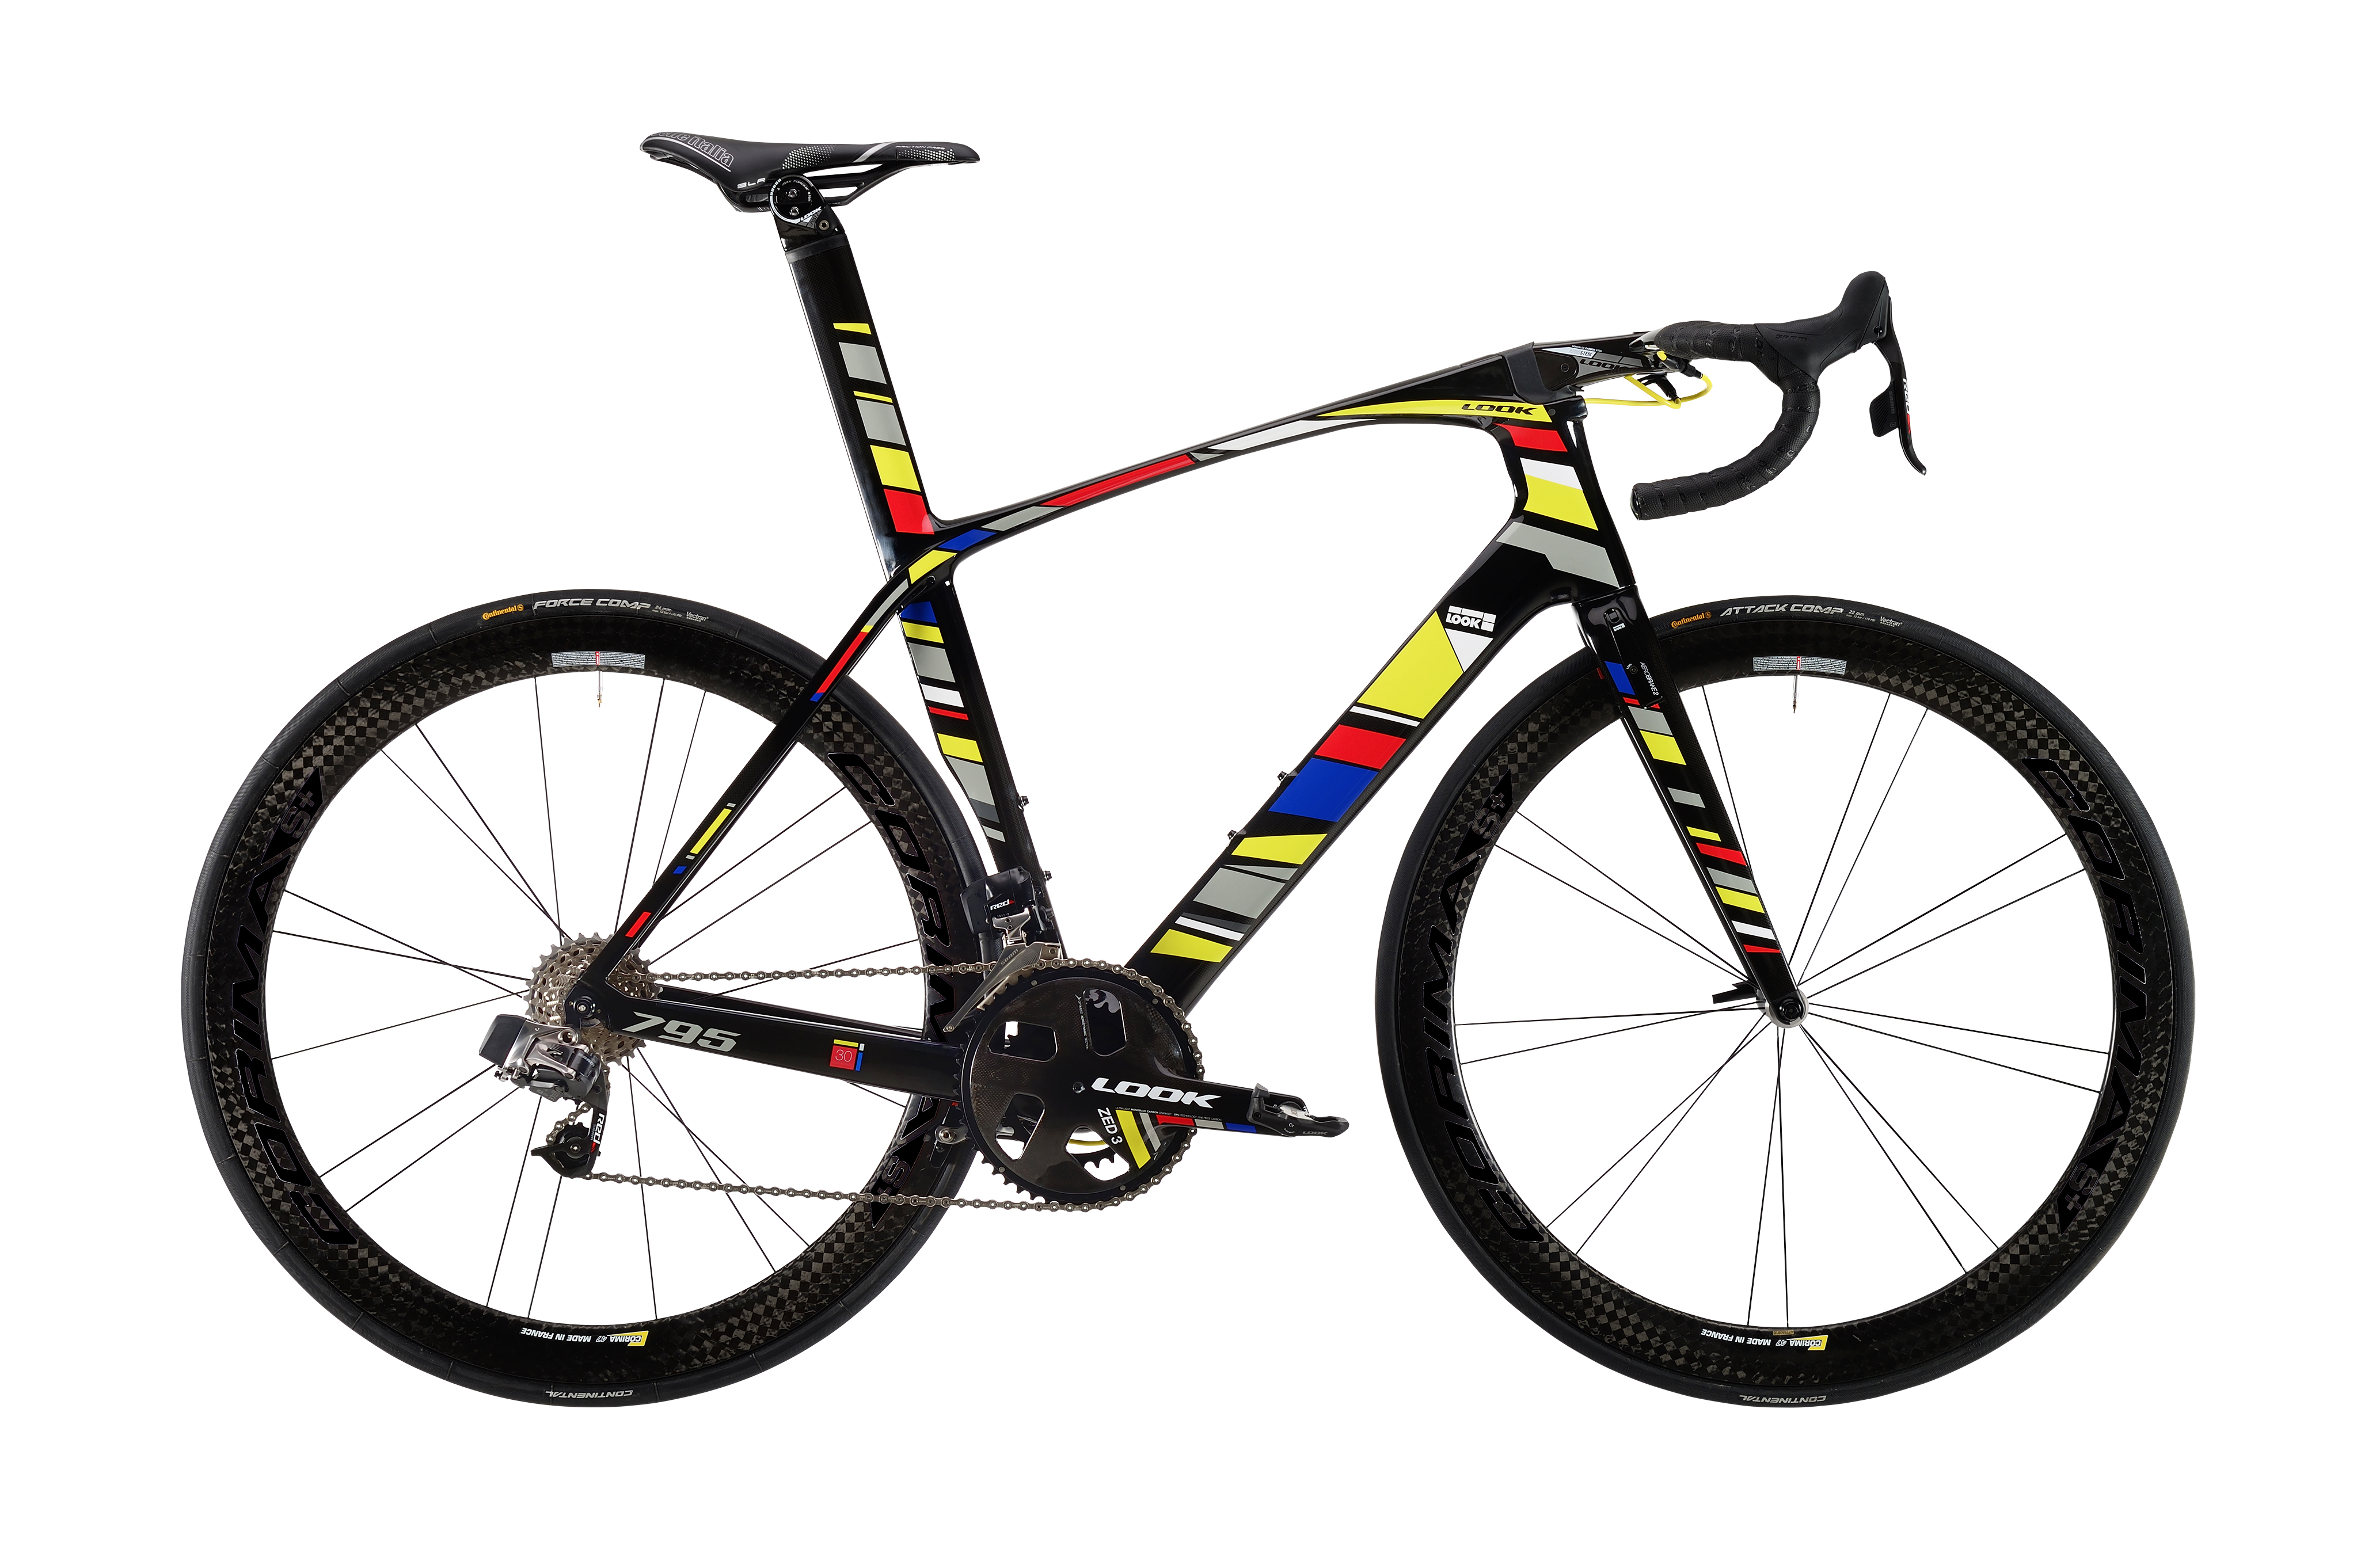 Look Offers Special Edition Bike And Pedals To Celebrate